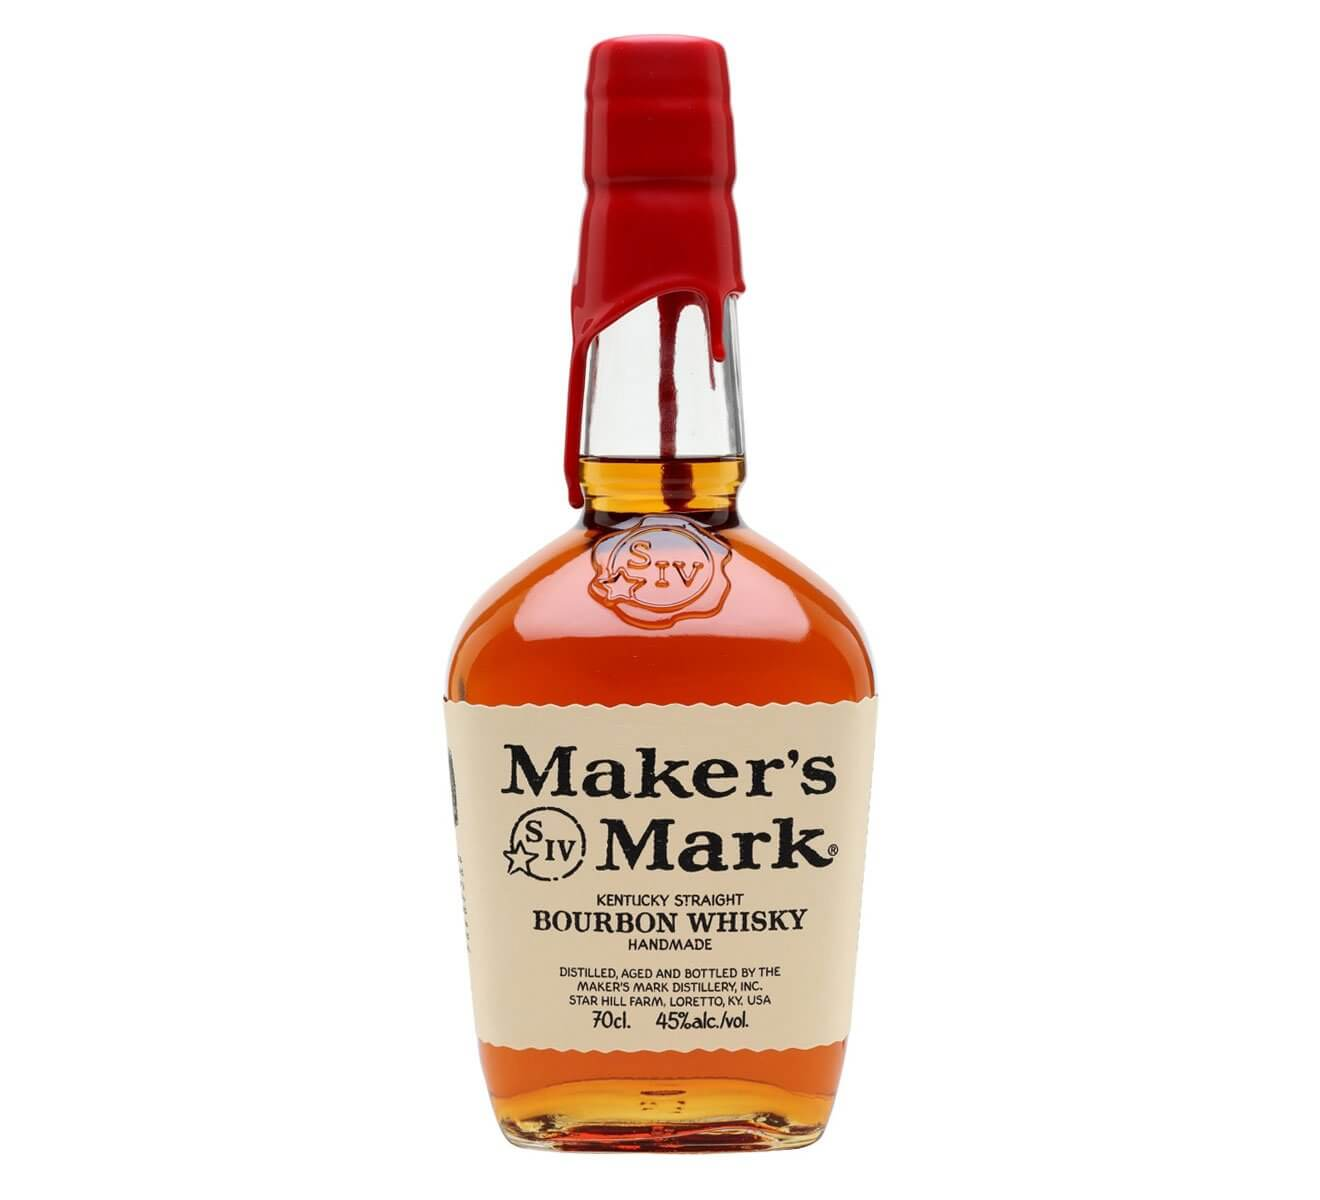 Maker's Mark Bourbon, bottle onw hite